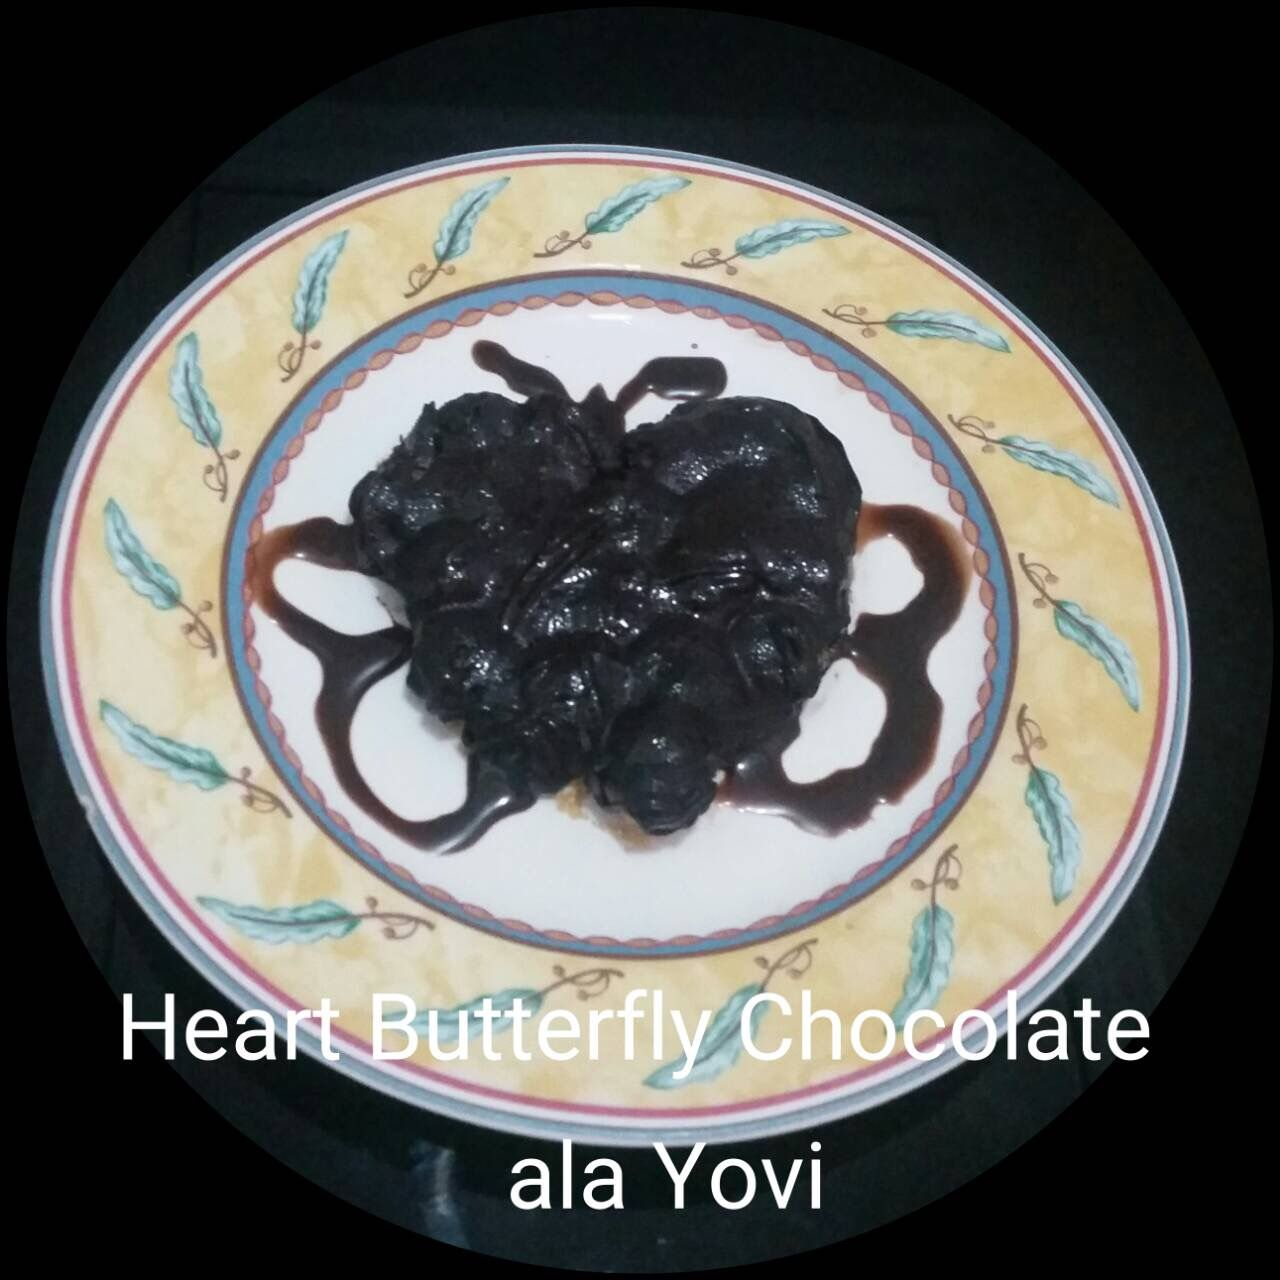 Heart Butterfly Chocolate